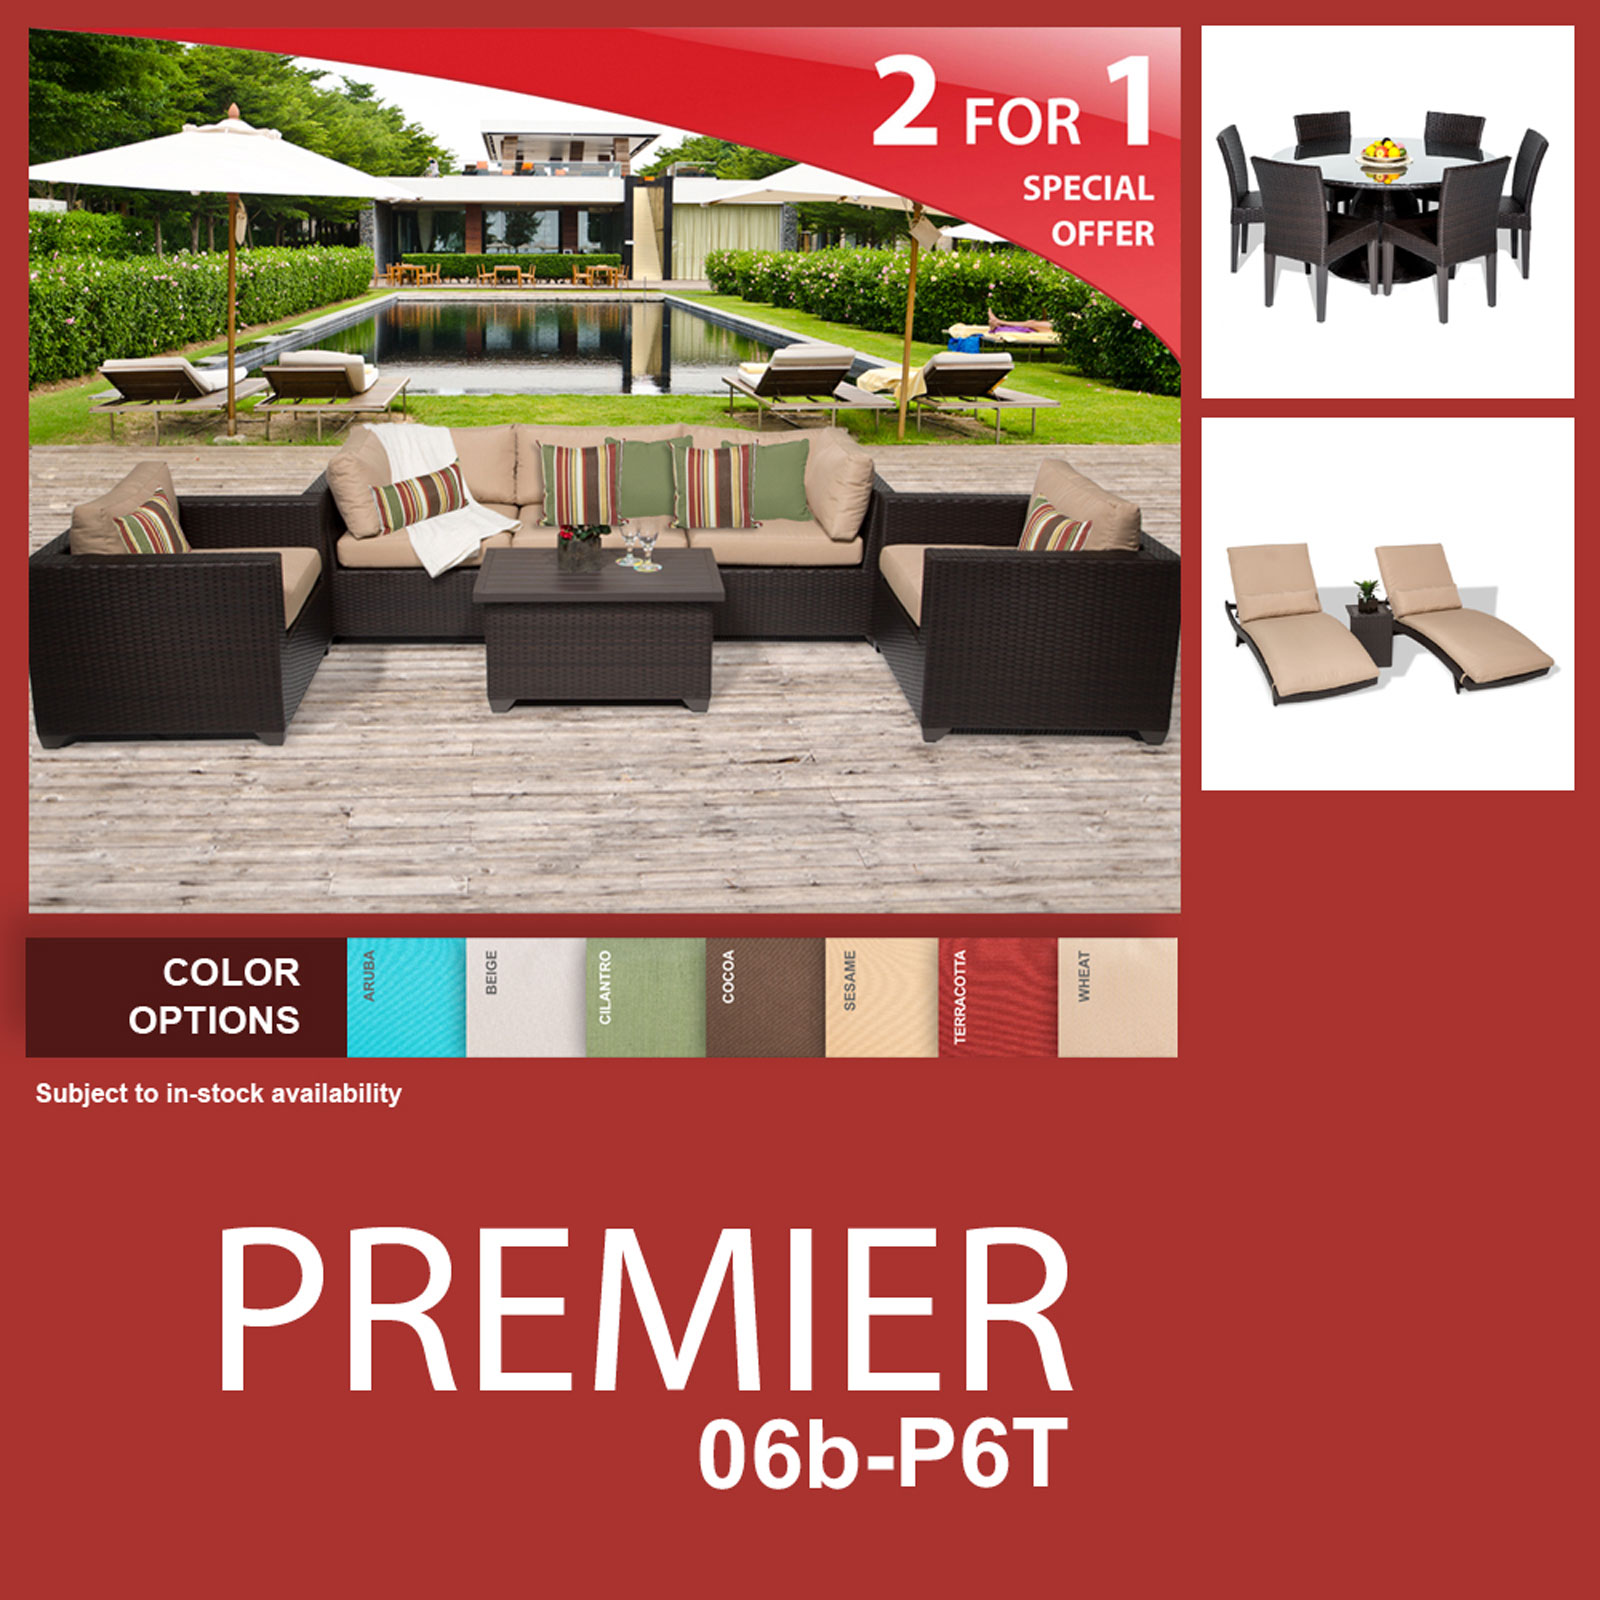 Premier 16 Piece Outdoor Wicker Patio Furniture Package PREMIER-06b-P6T